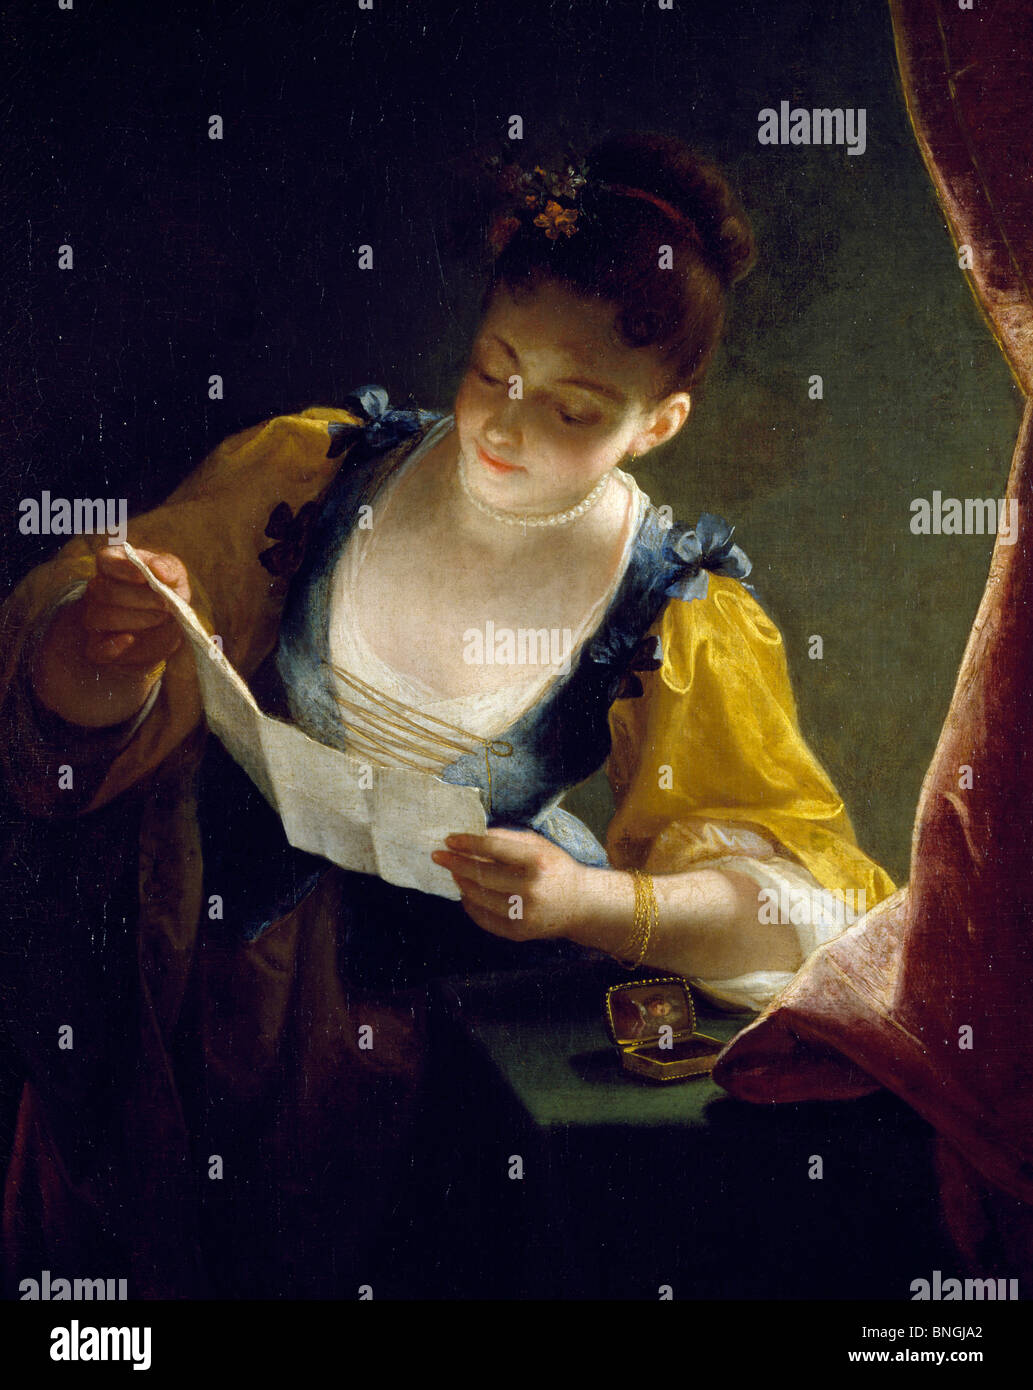 young w reading a letter by jean raoux 18th century stock young w reading a letter by jean raoux 18th century 1677 1734 paris musee du petit palais